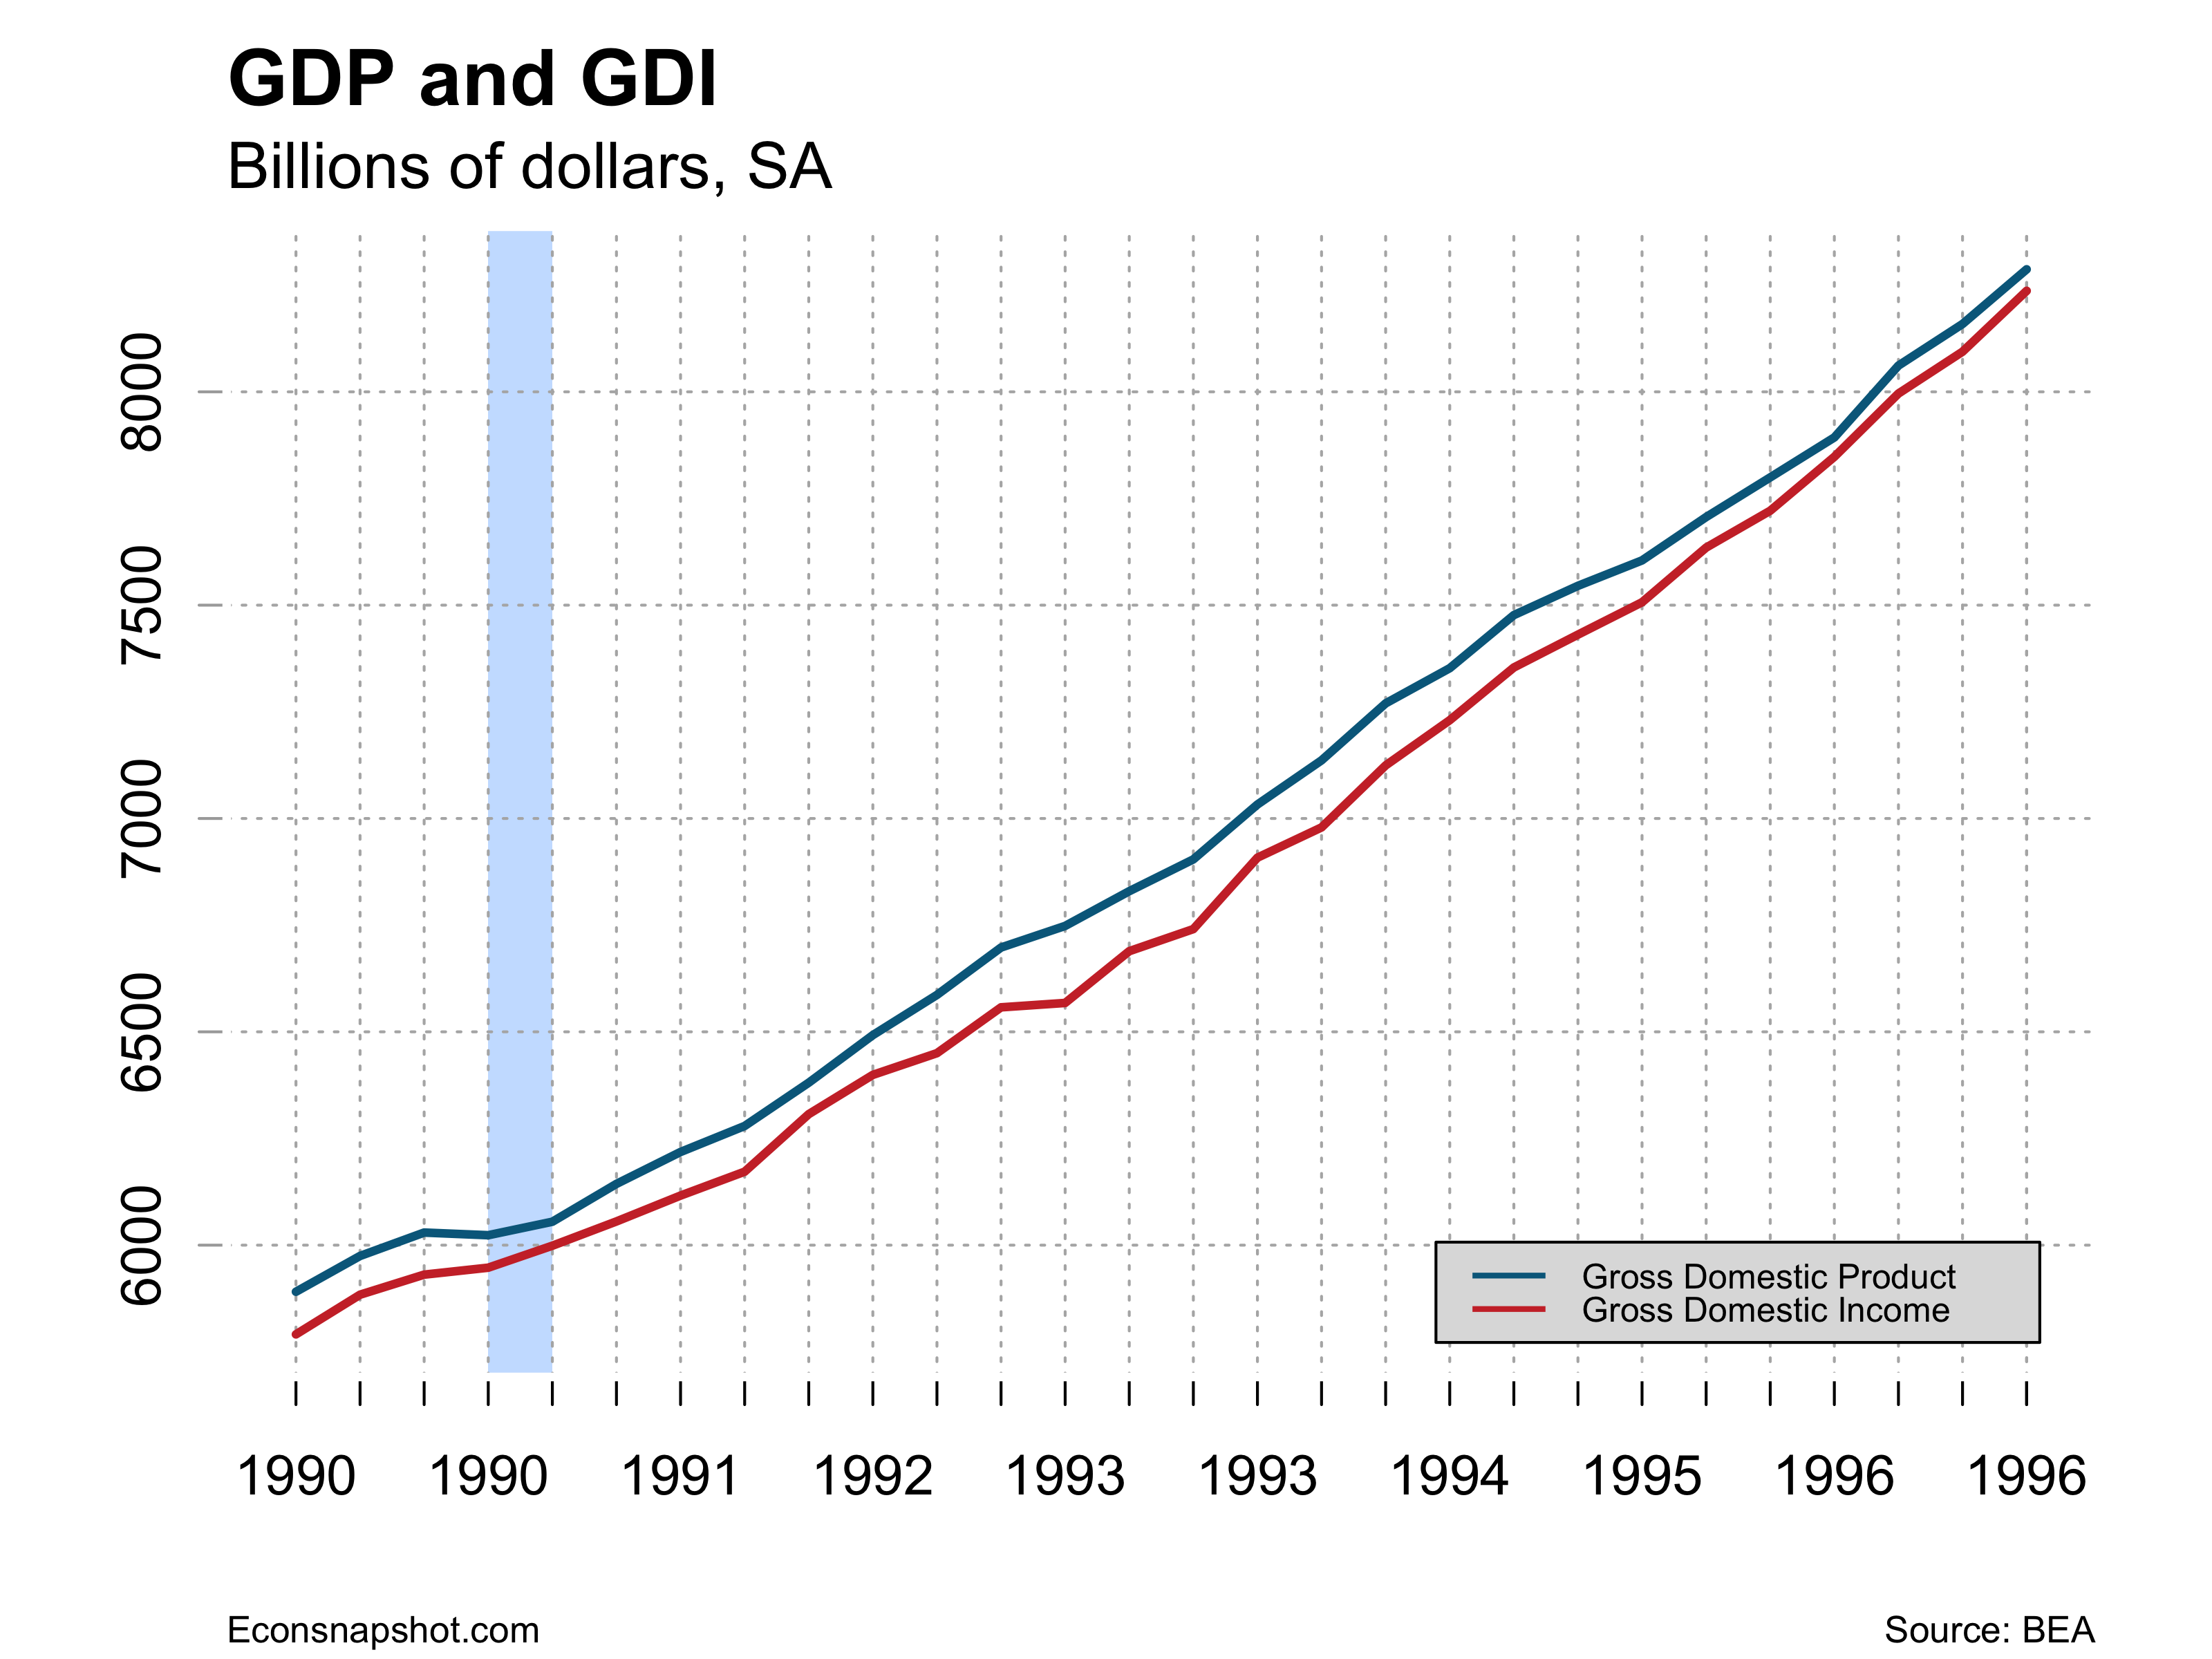 gdi vs gdp Gdp is the measurement of a country's total output here's how gross domestic product is calculated, real vs nominal, and gdp vs gnp.